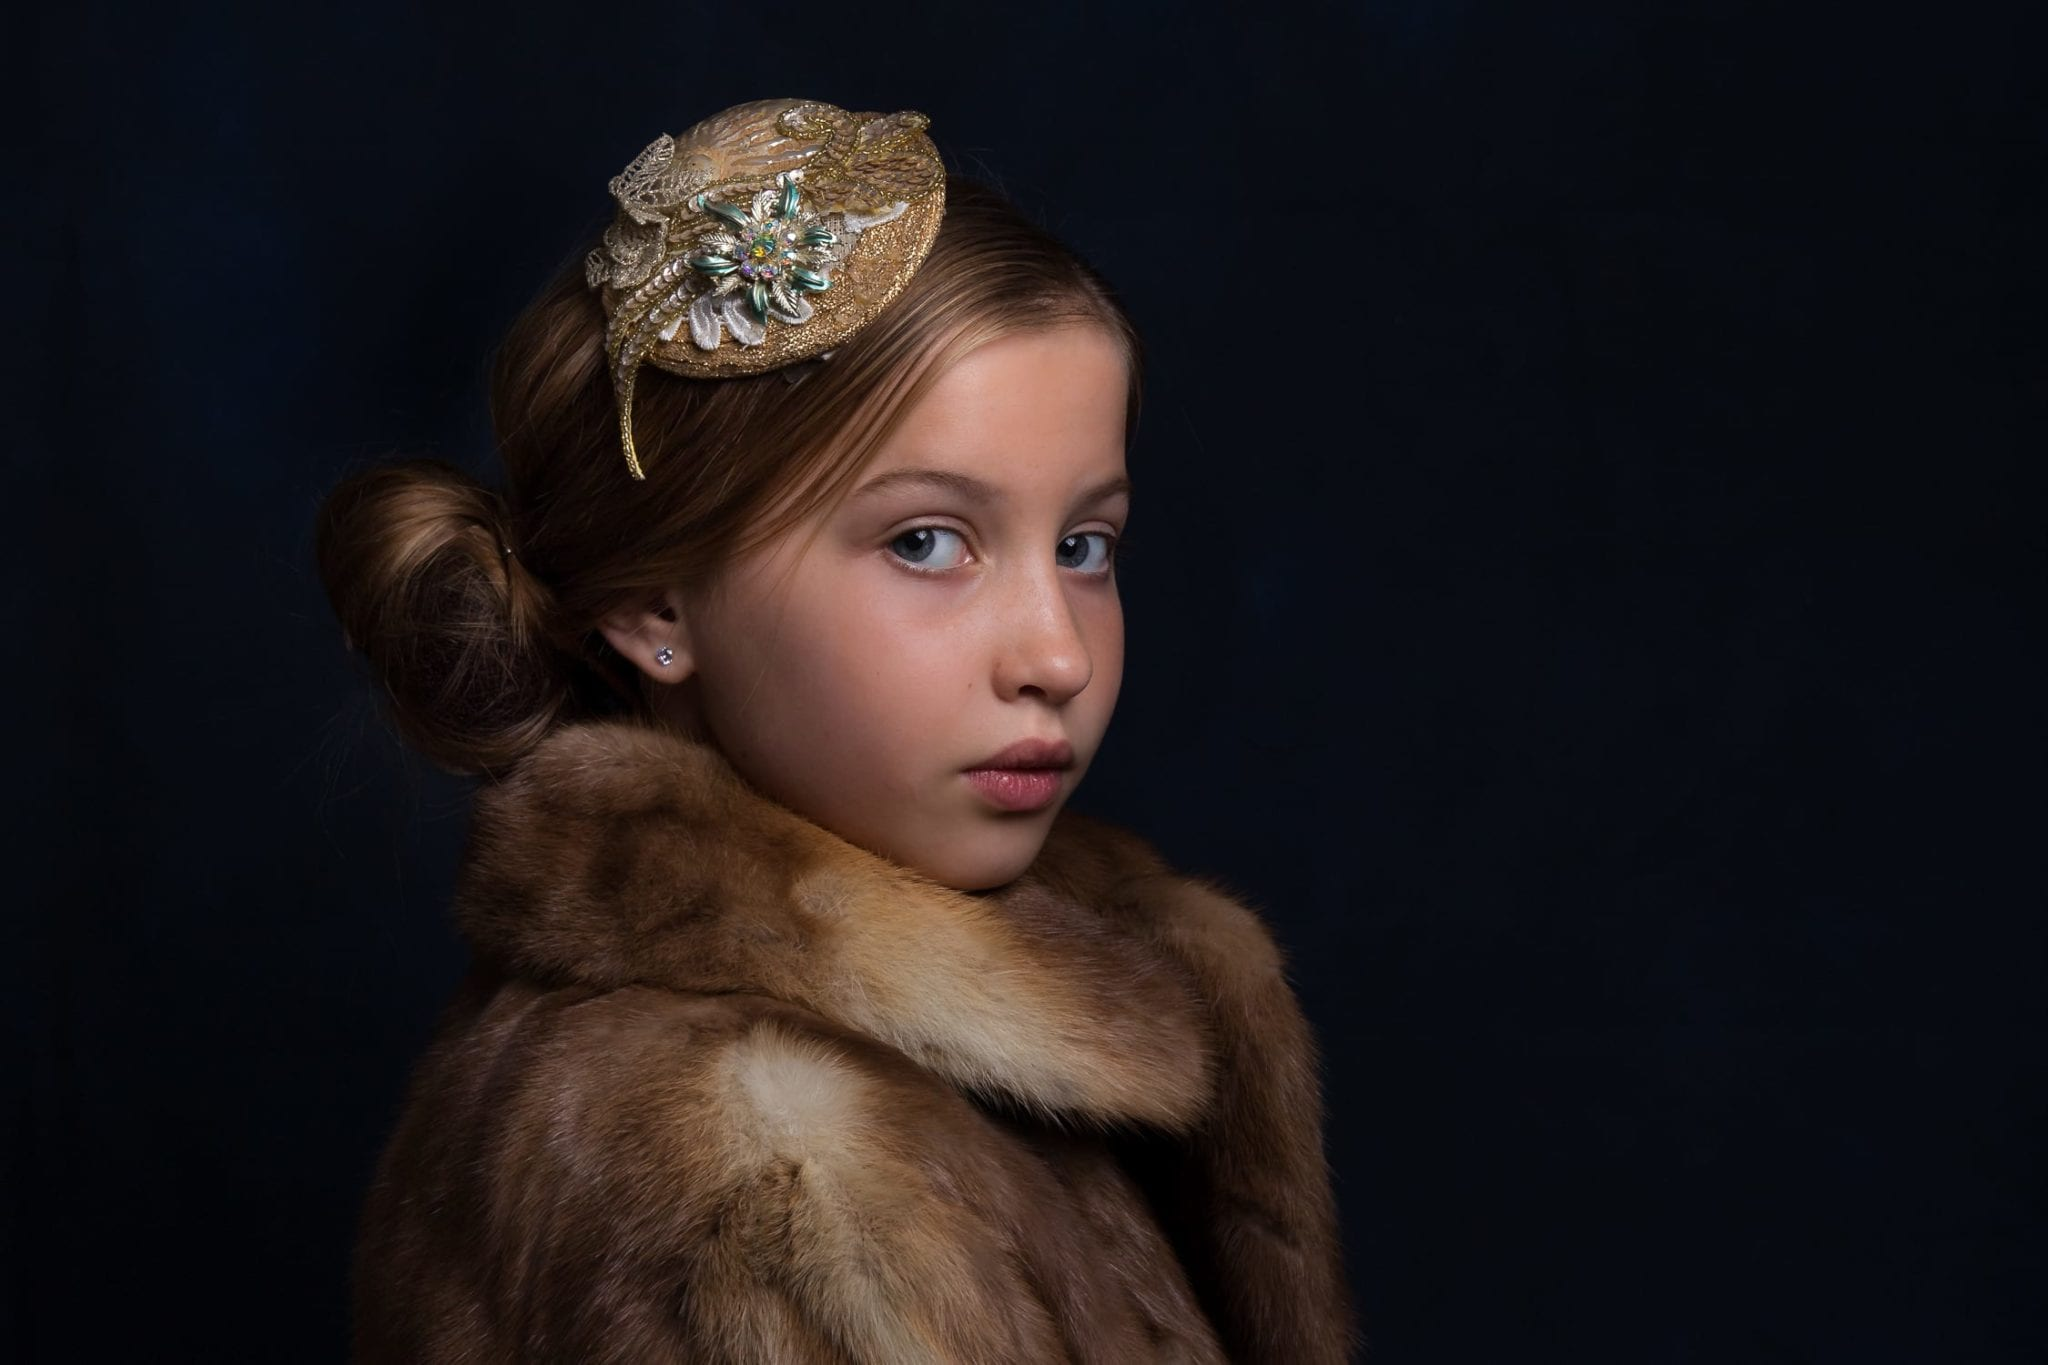 young girl dressed in fur coat and hair pice image taken in a chelmsford family photography studio